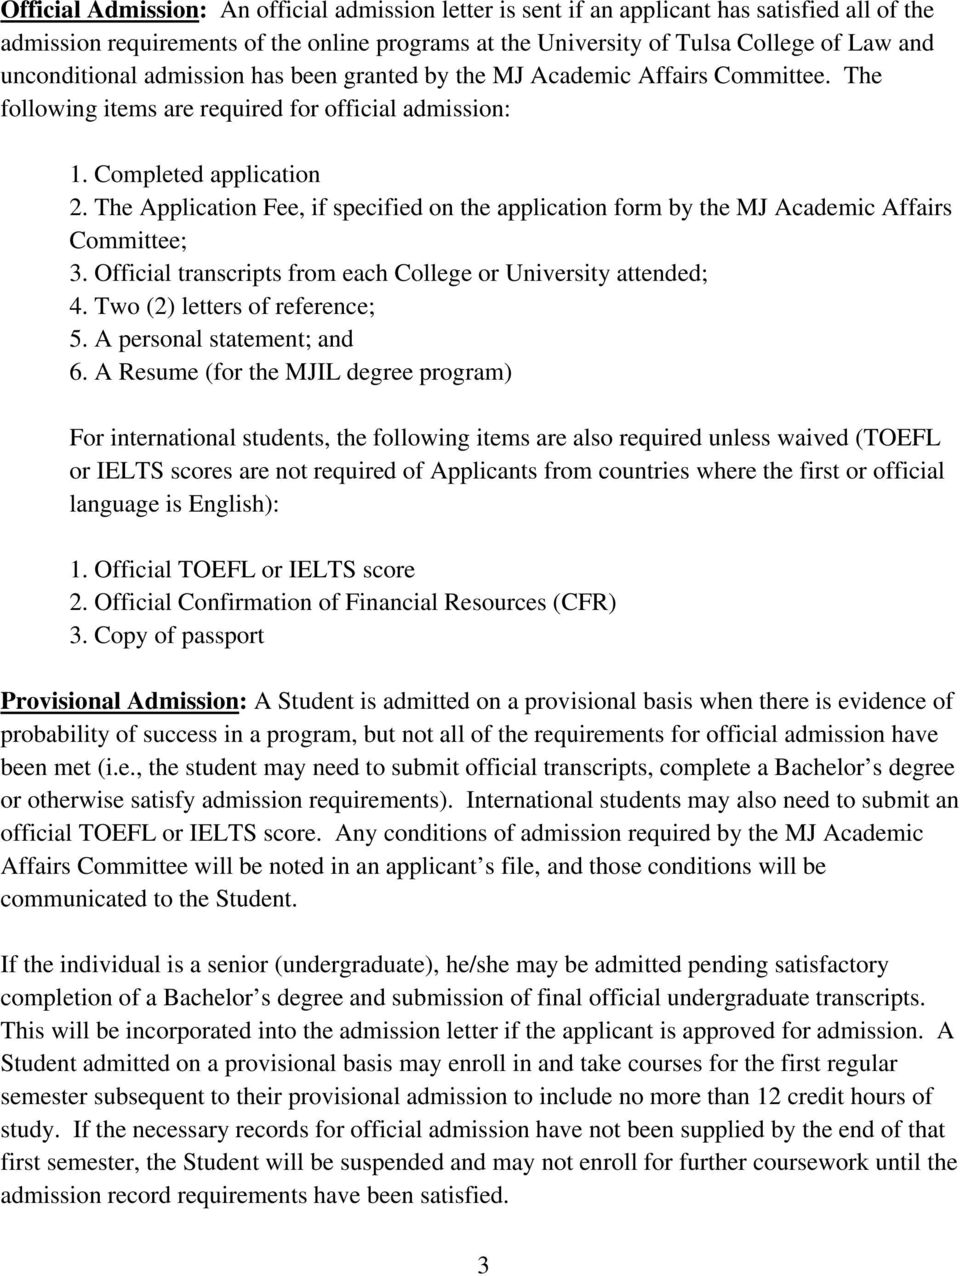 The Application Fee, if specified on the application form by the MJ Academic Affairs Committee; 3. Official transcripts from each College or University attended; 4. Two (2) letters of reference; 5.